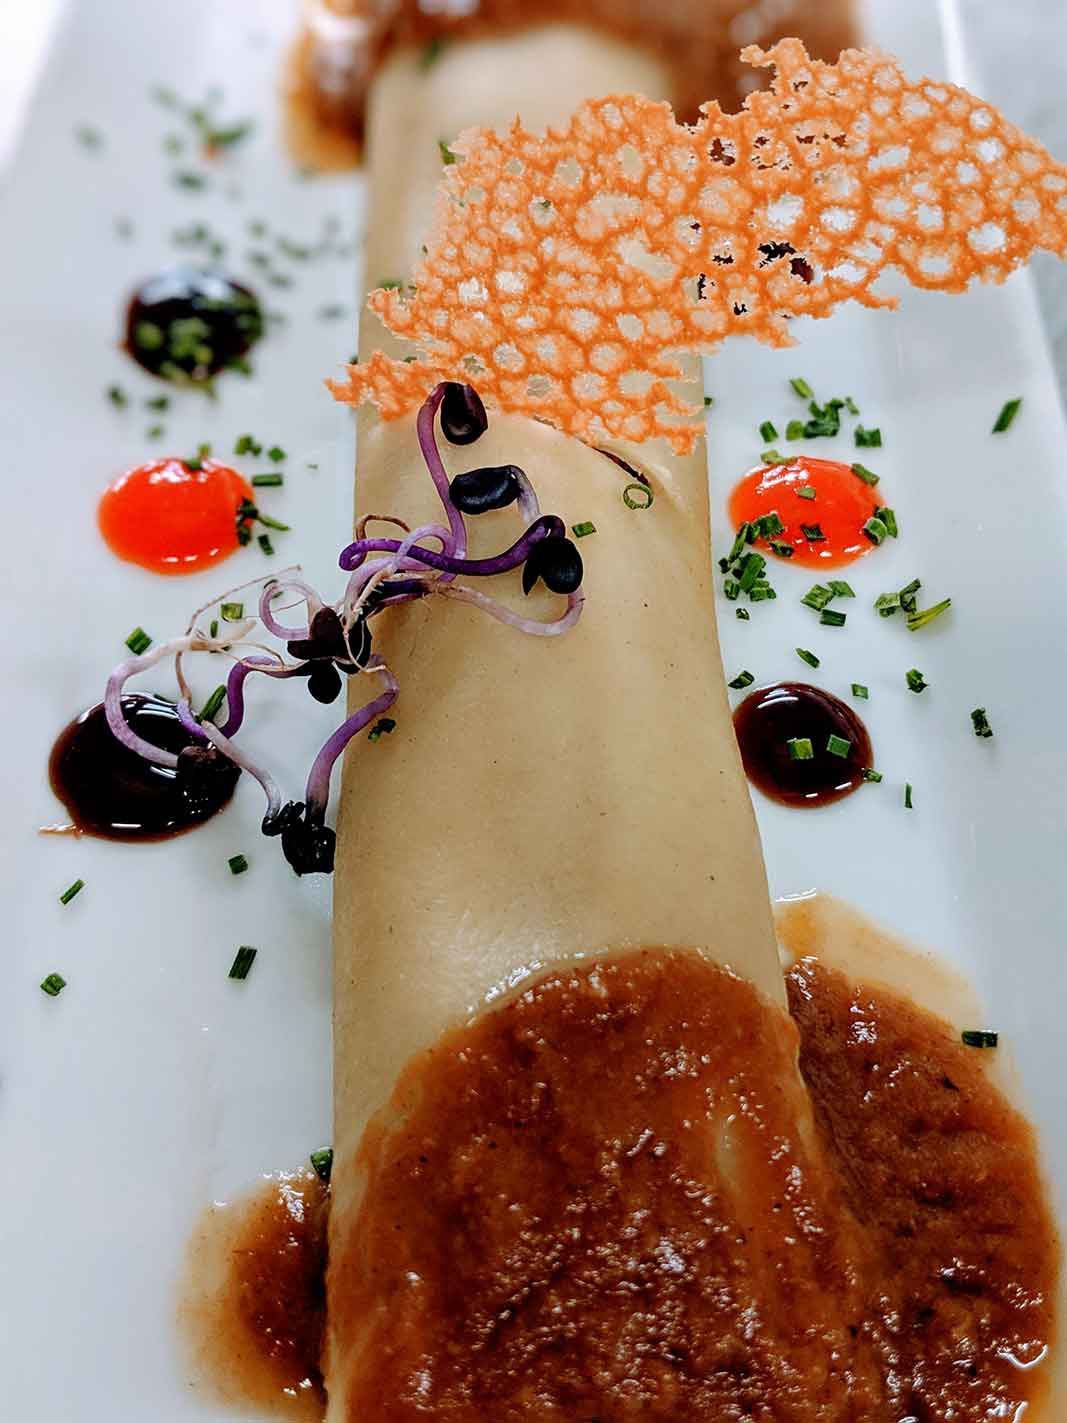 Chicken cannelloni with foie gras, truffle and gravy